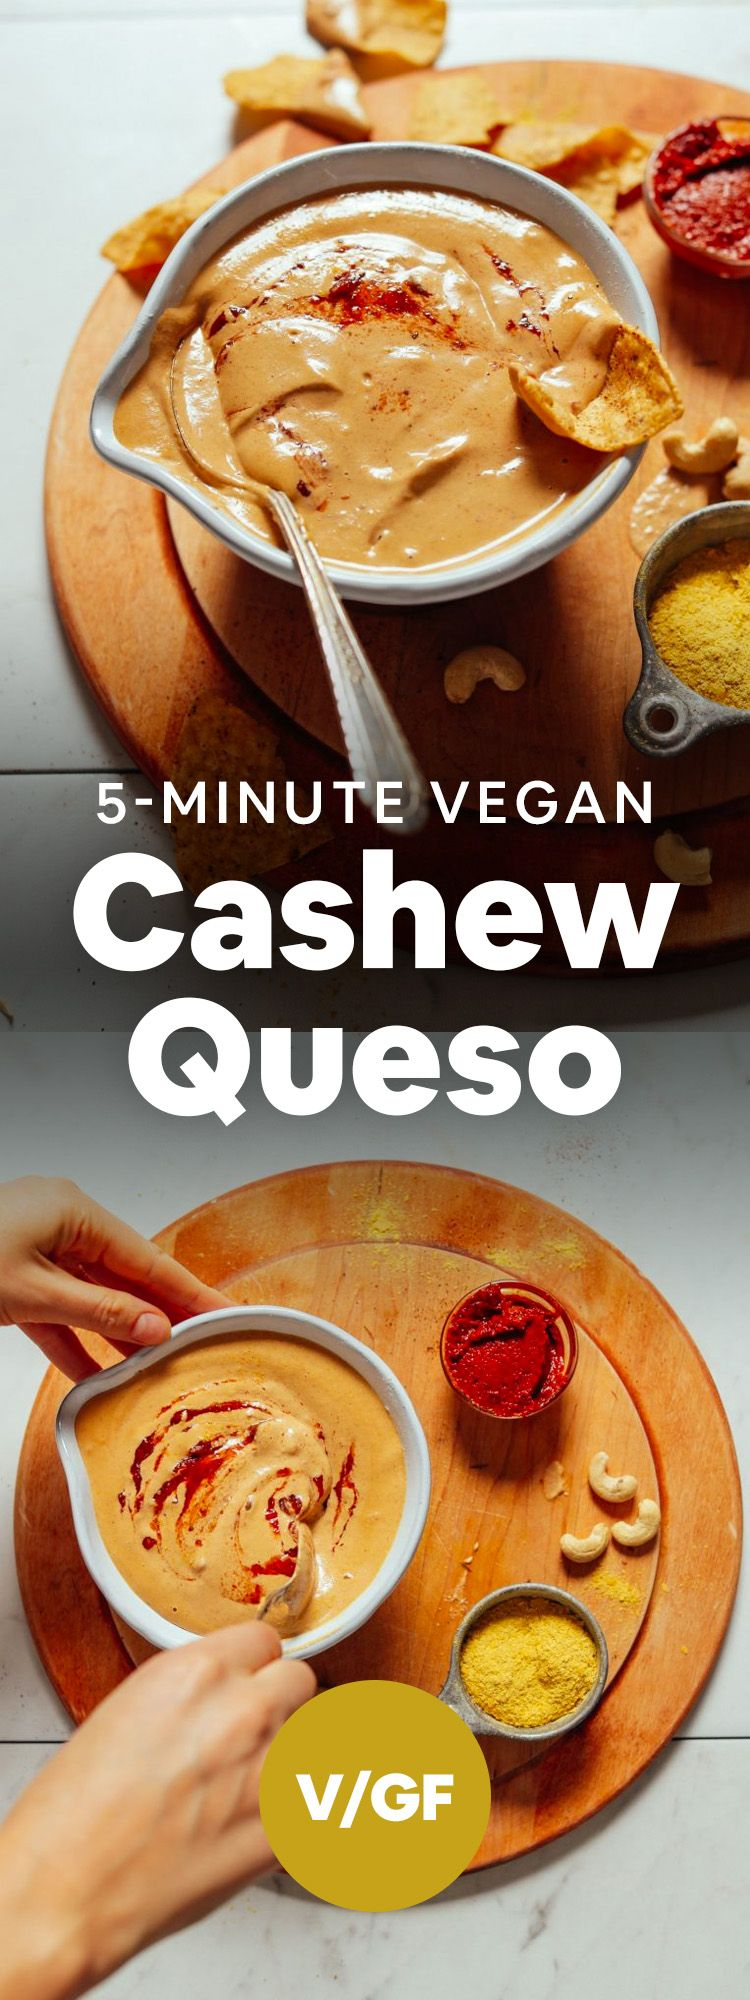 5-Minute Vegan Cashew Queso | Minimalist Baker Recipes